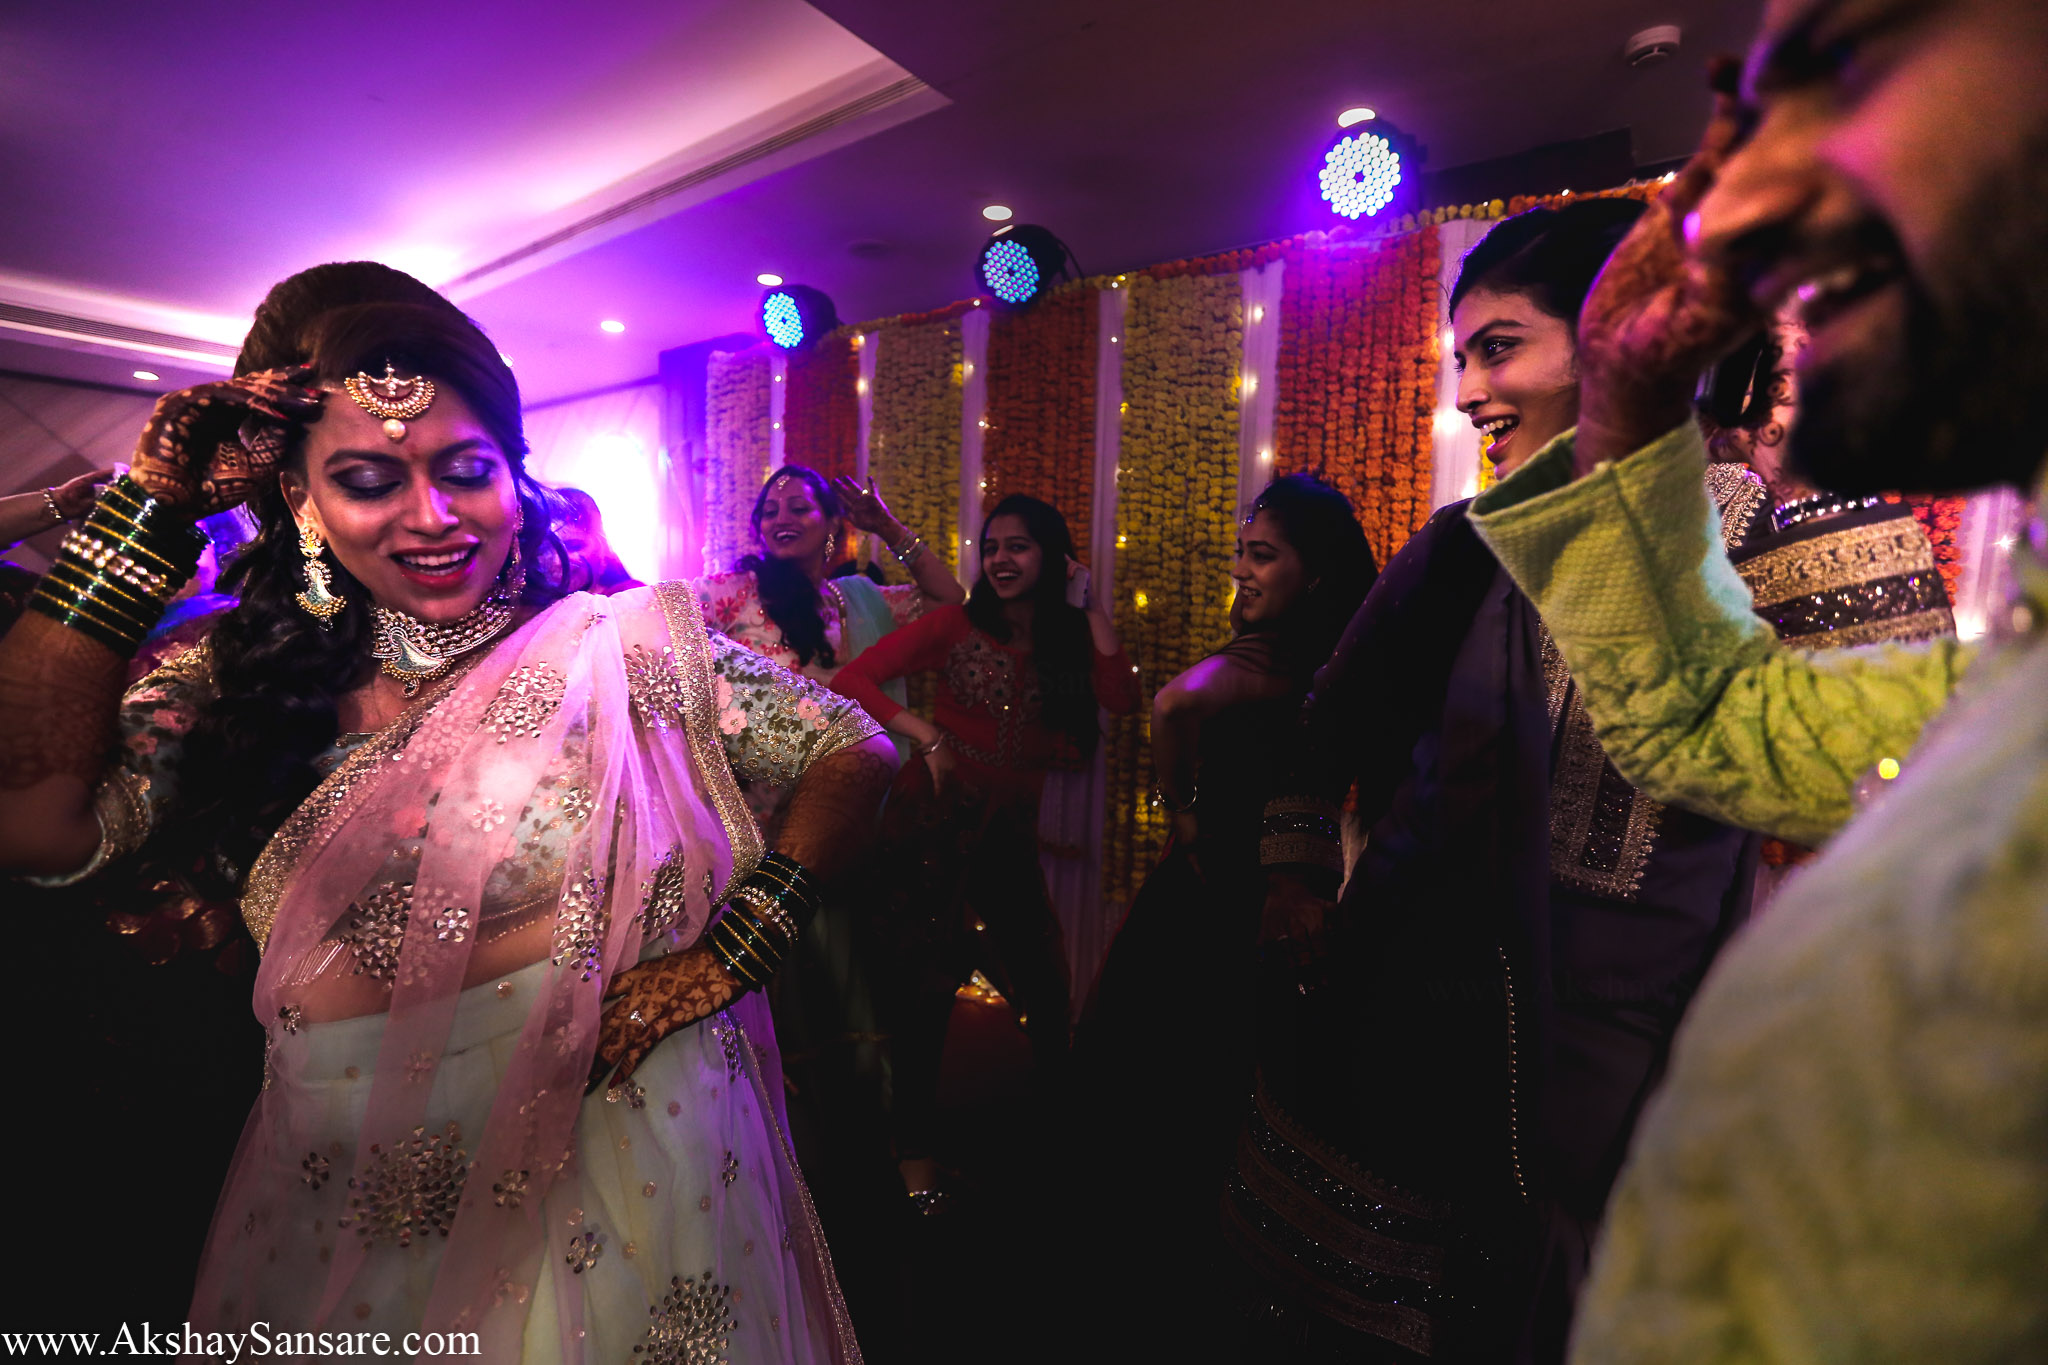 Ajay & Devika Akshay Sansare Photography Best Candid wedding photographer in mumbai india19.jpg